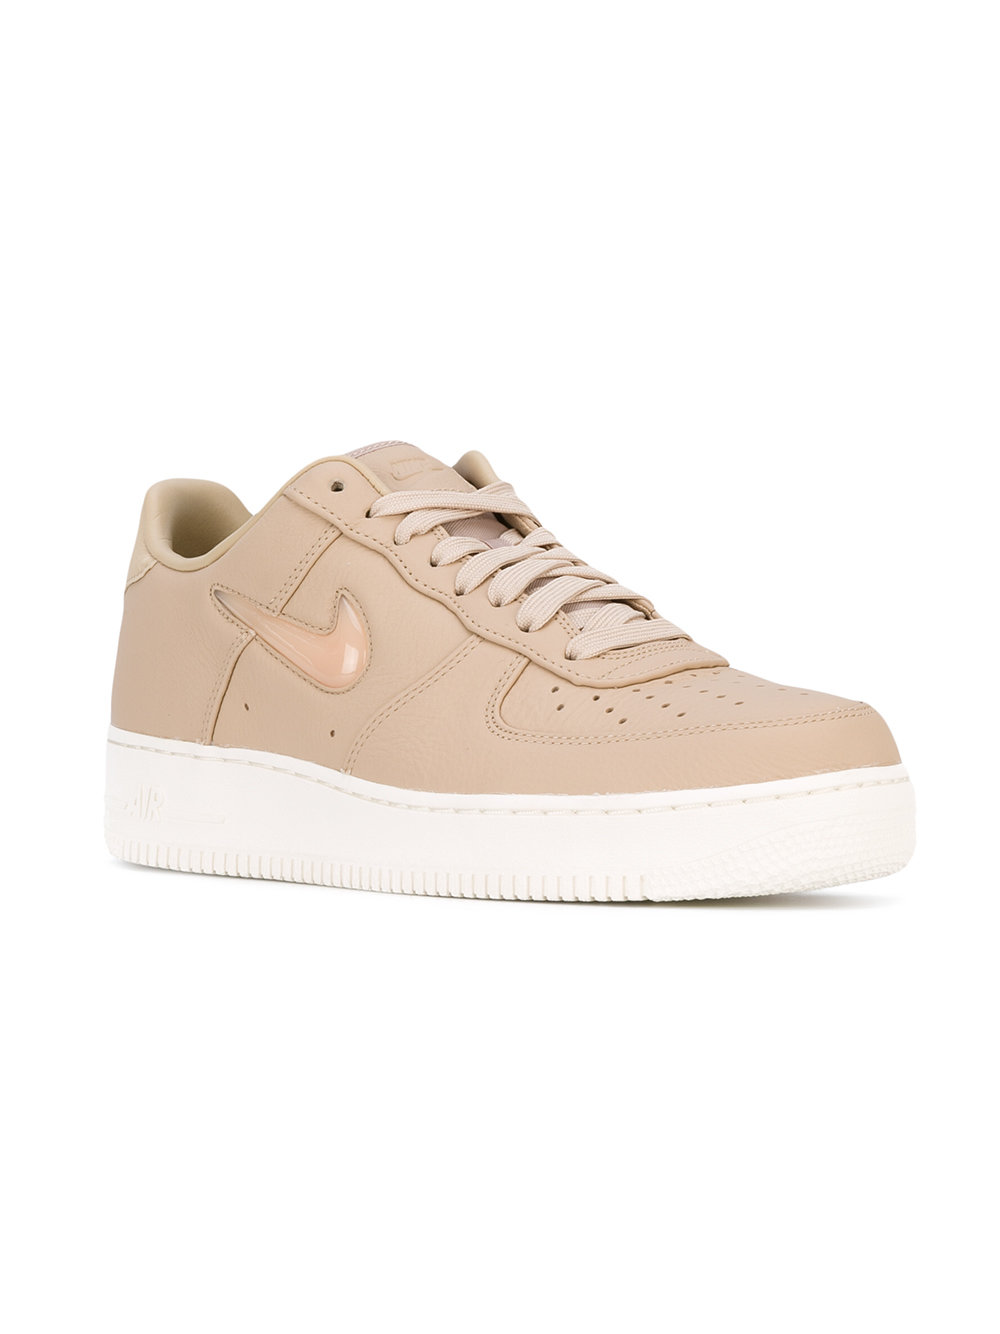 8bb86b84972 Nike Air Force 1 Sneakers - Farfetch